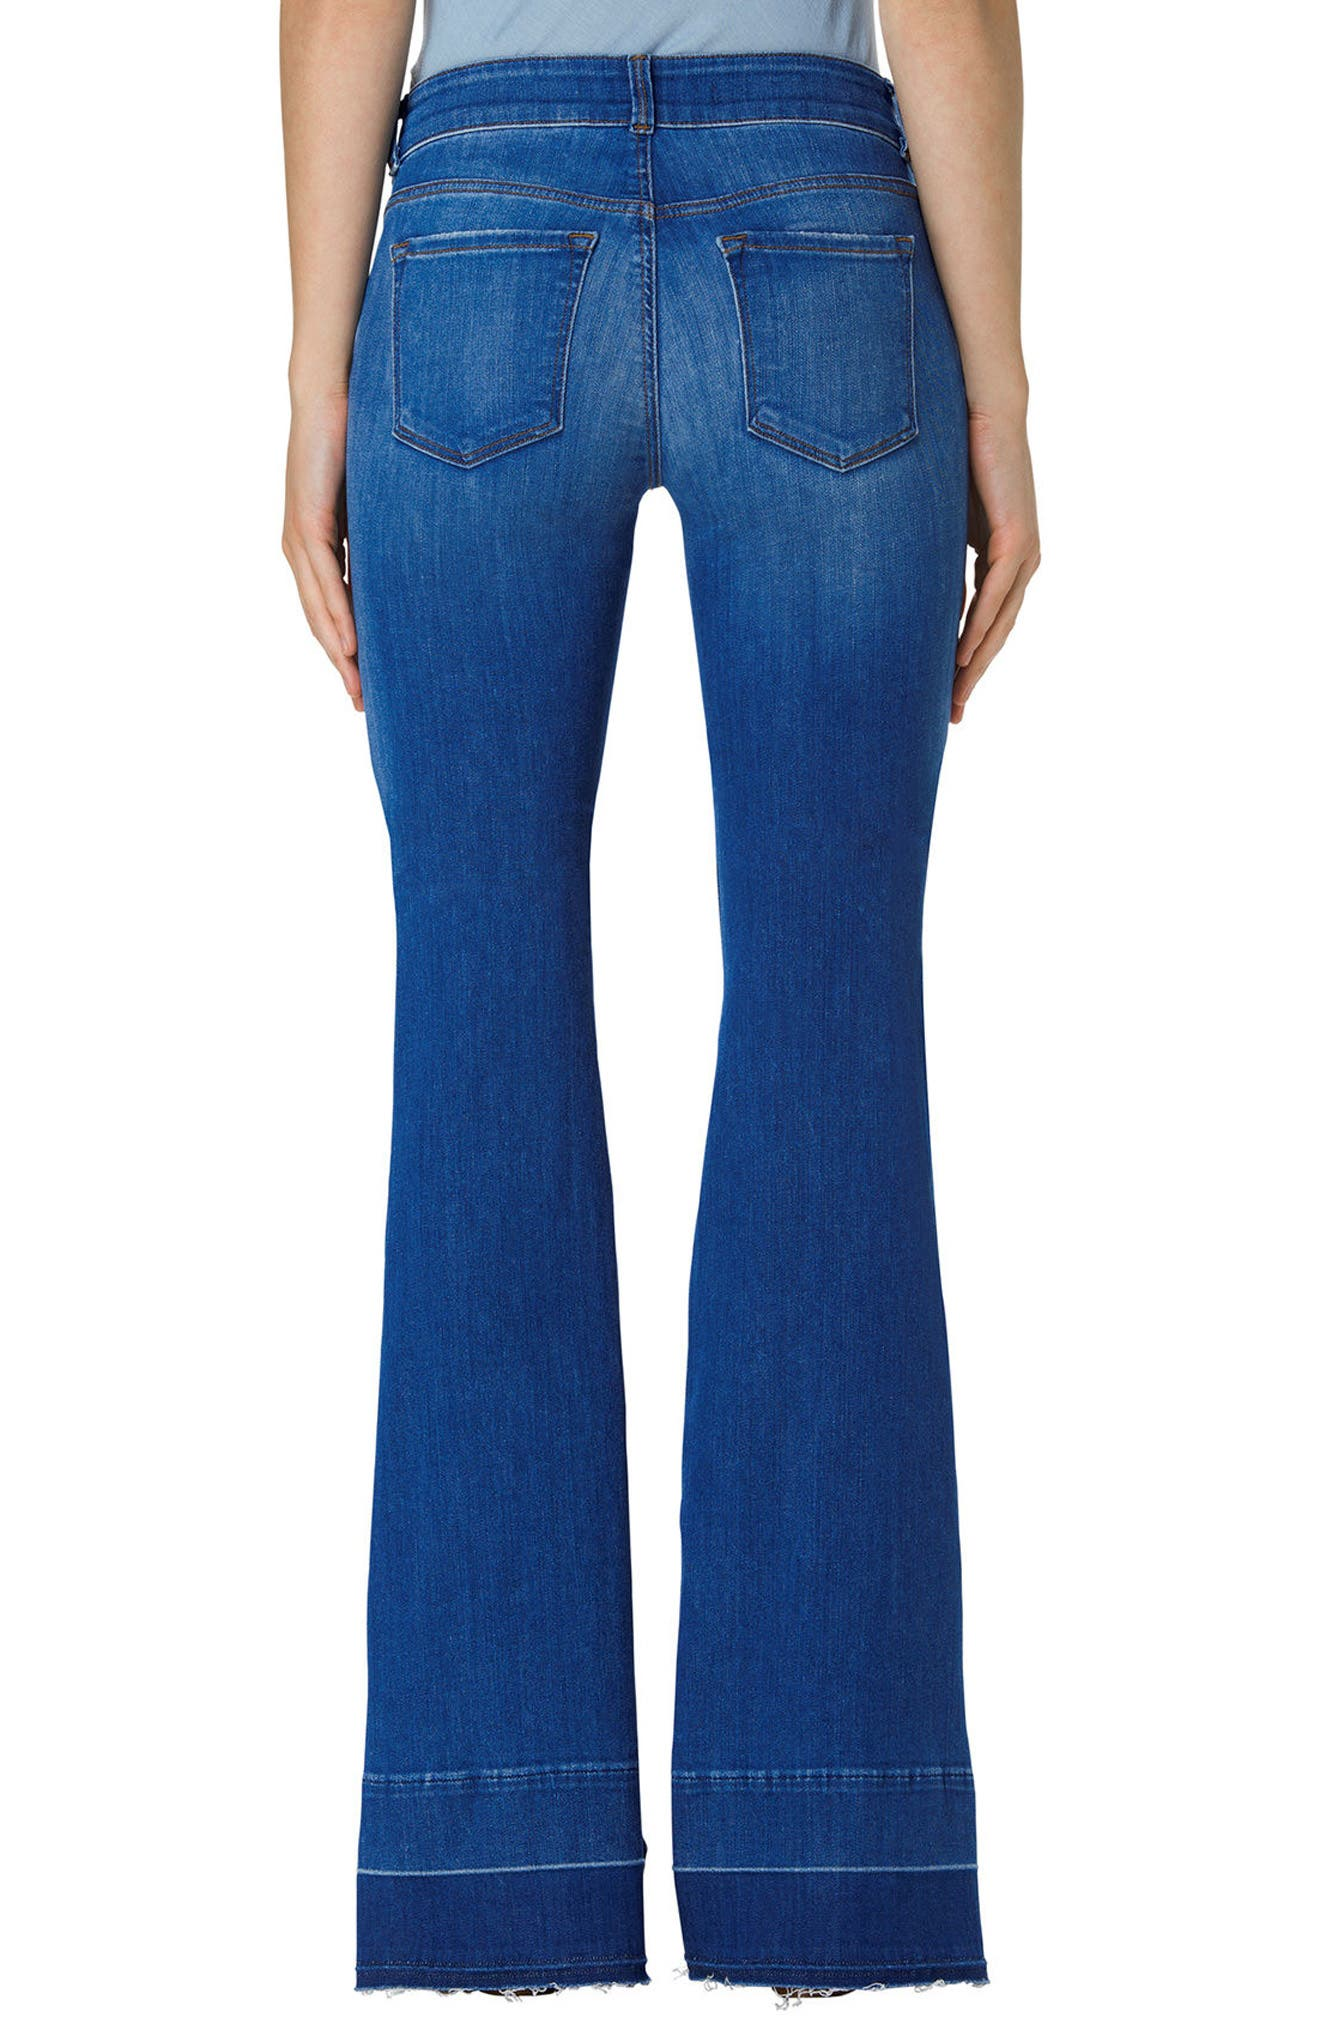 Alternate Image 2  - J Brand Love Story Flare Jeans (Angelic)